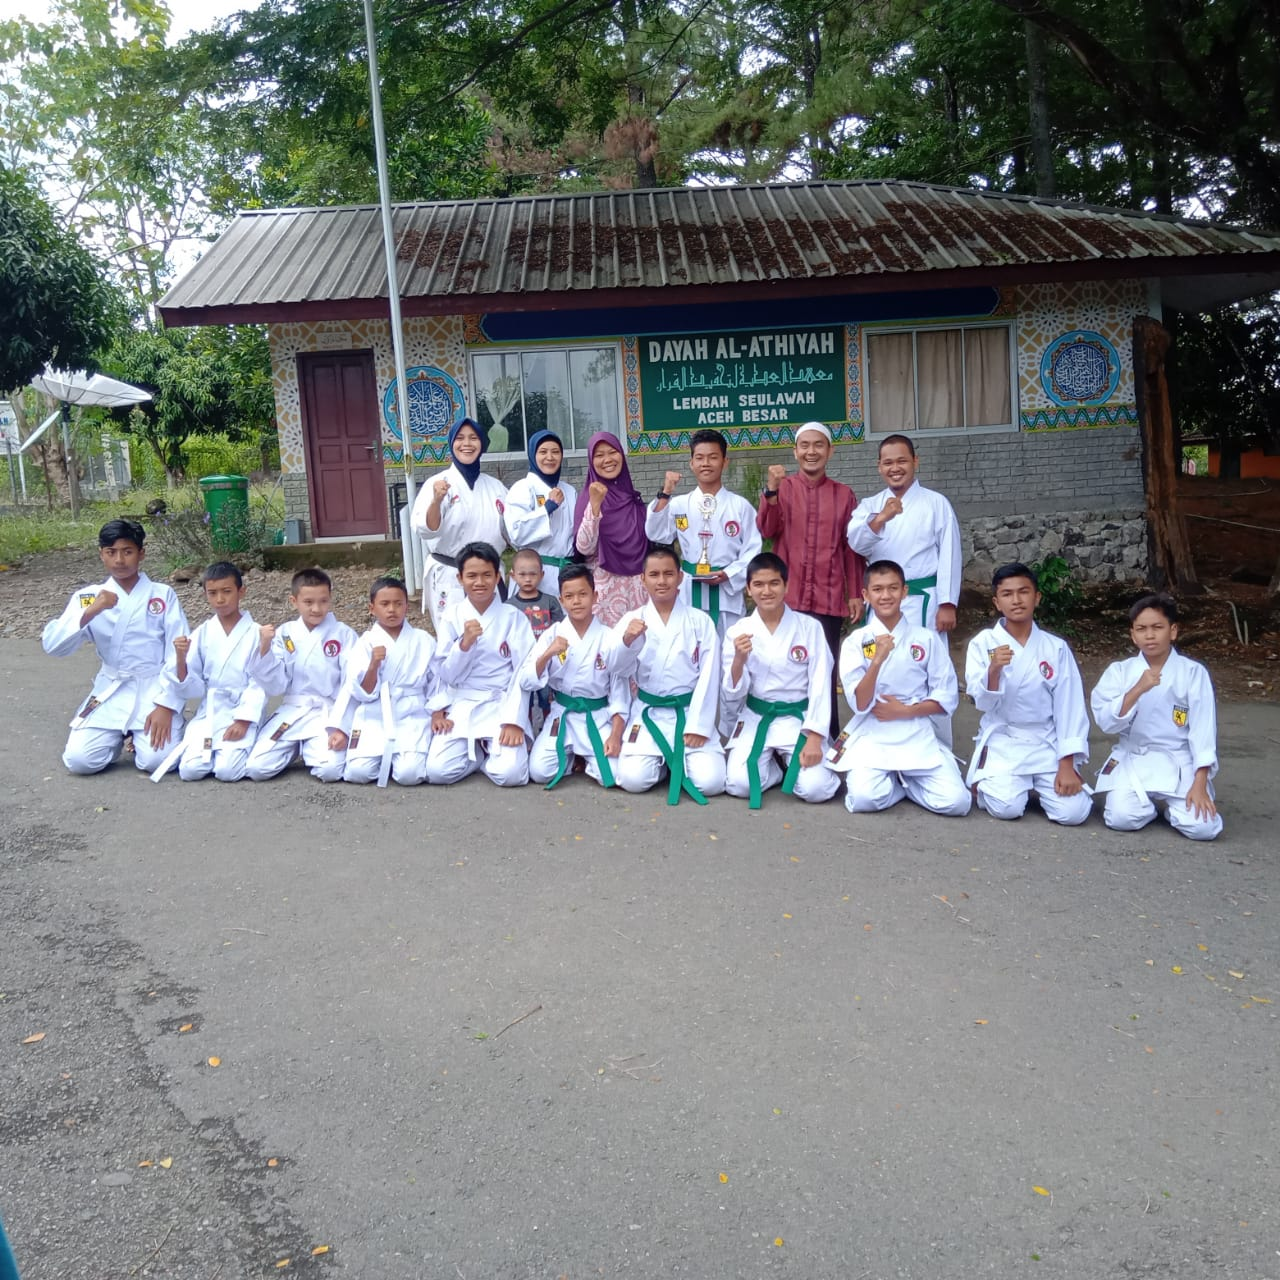 Team Karate SMP Plus Al-Athiyah